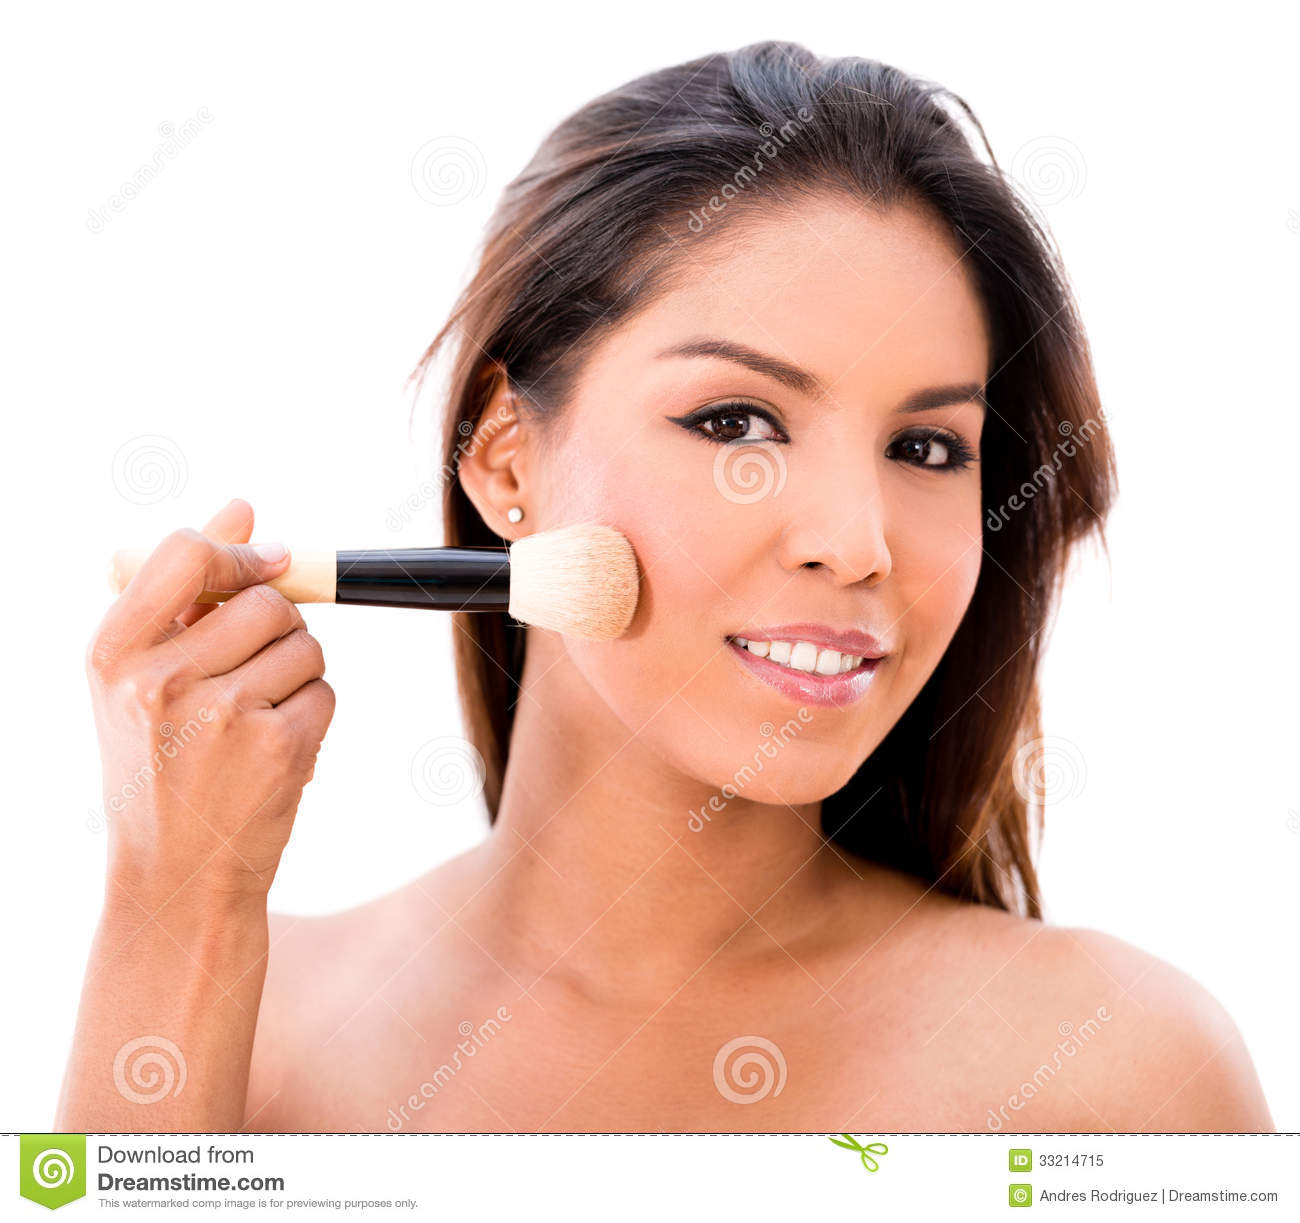 articles how to apply makeup for a year old